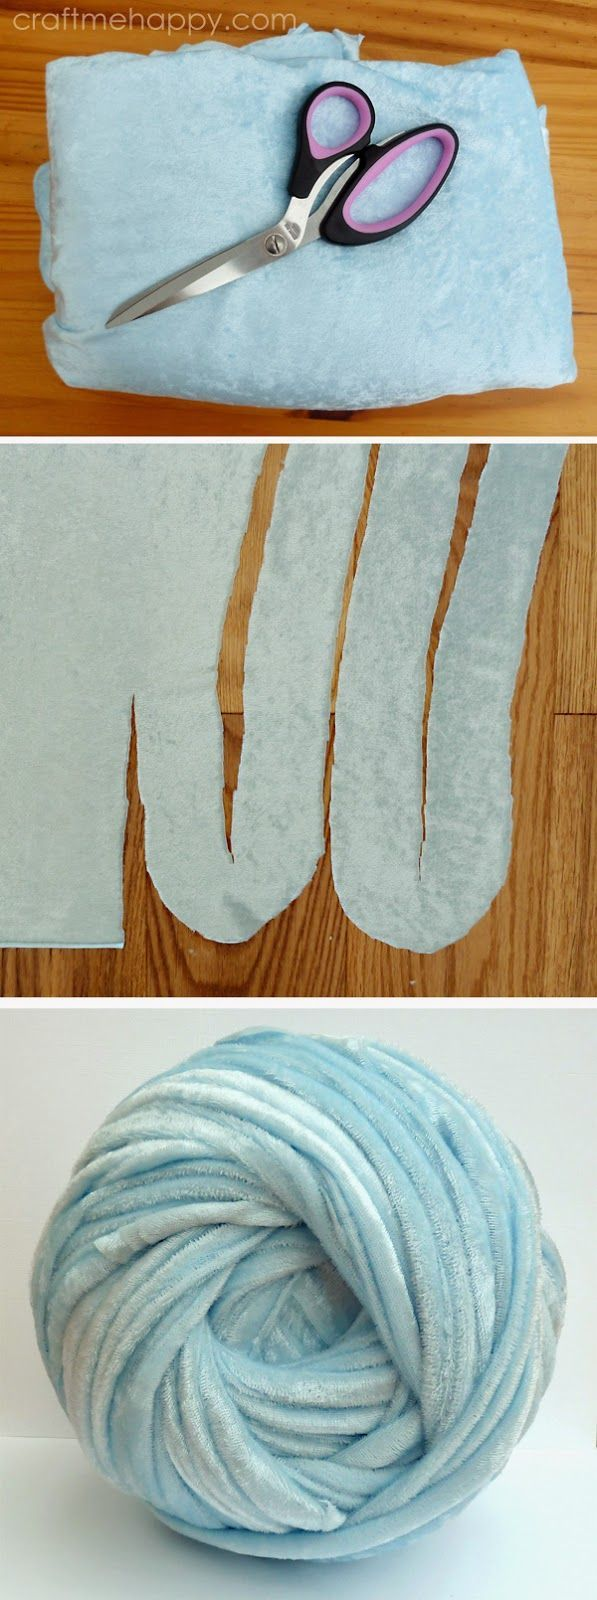 Craft me Happy!: how to make Super Chunky Yarn from Crushed Velvet Fabric